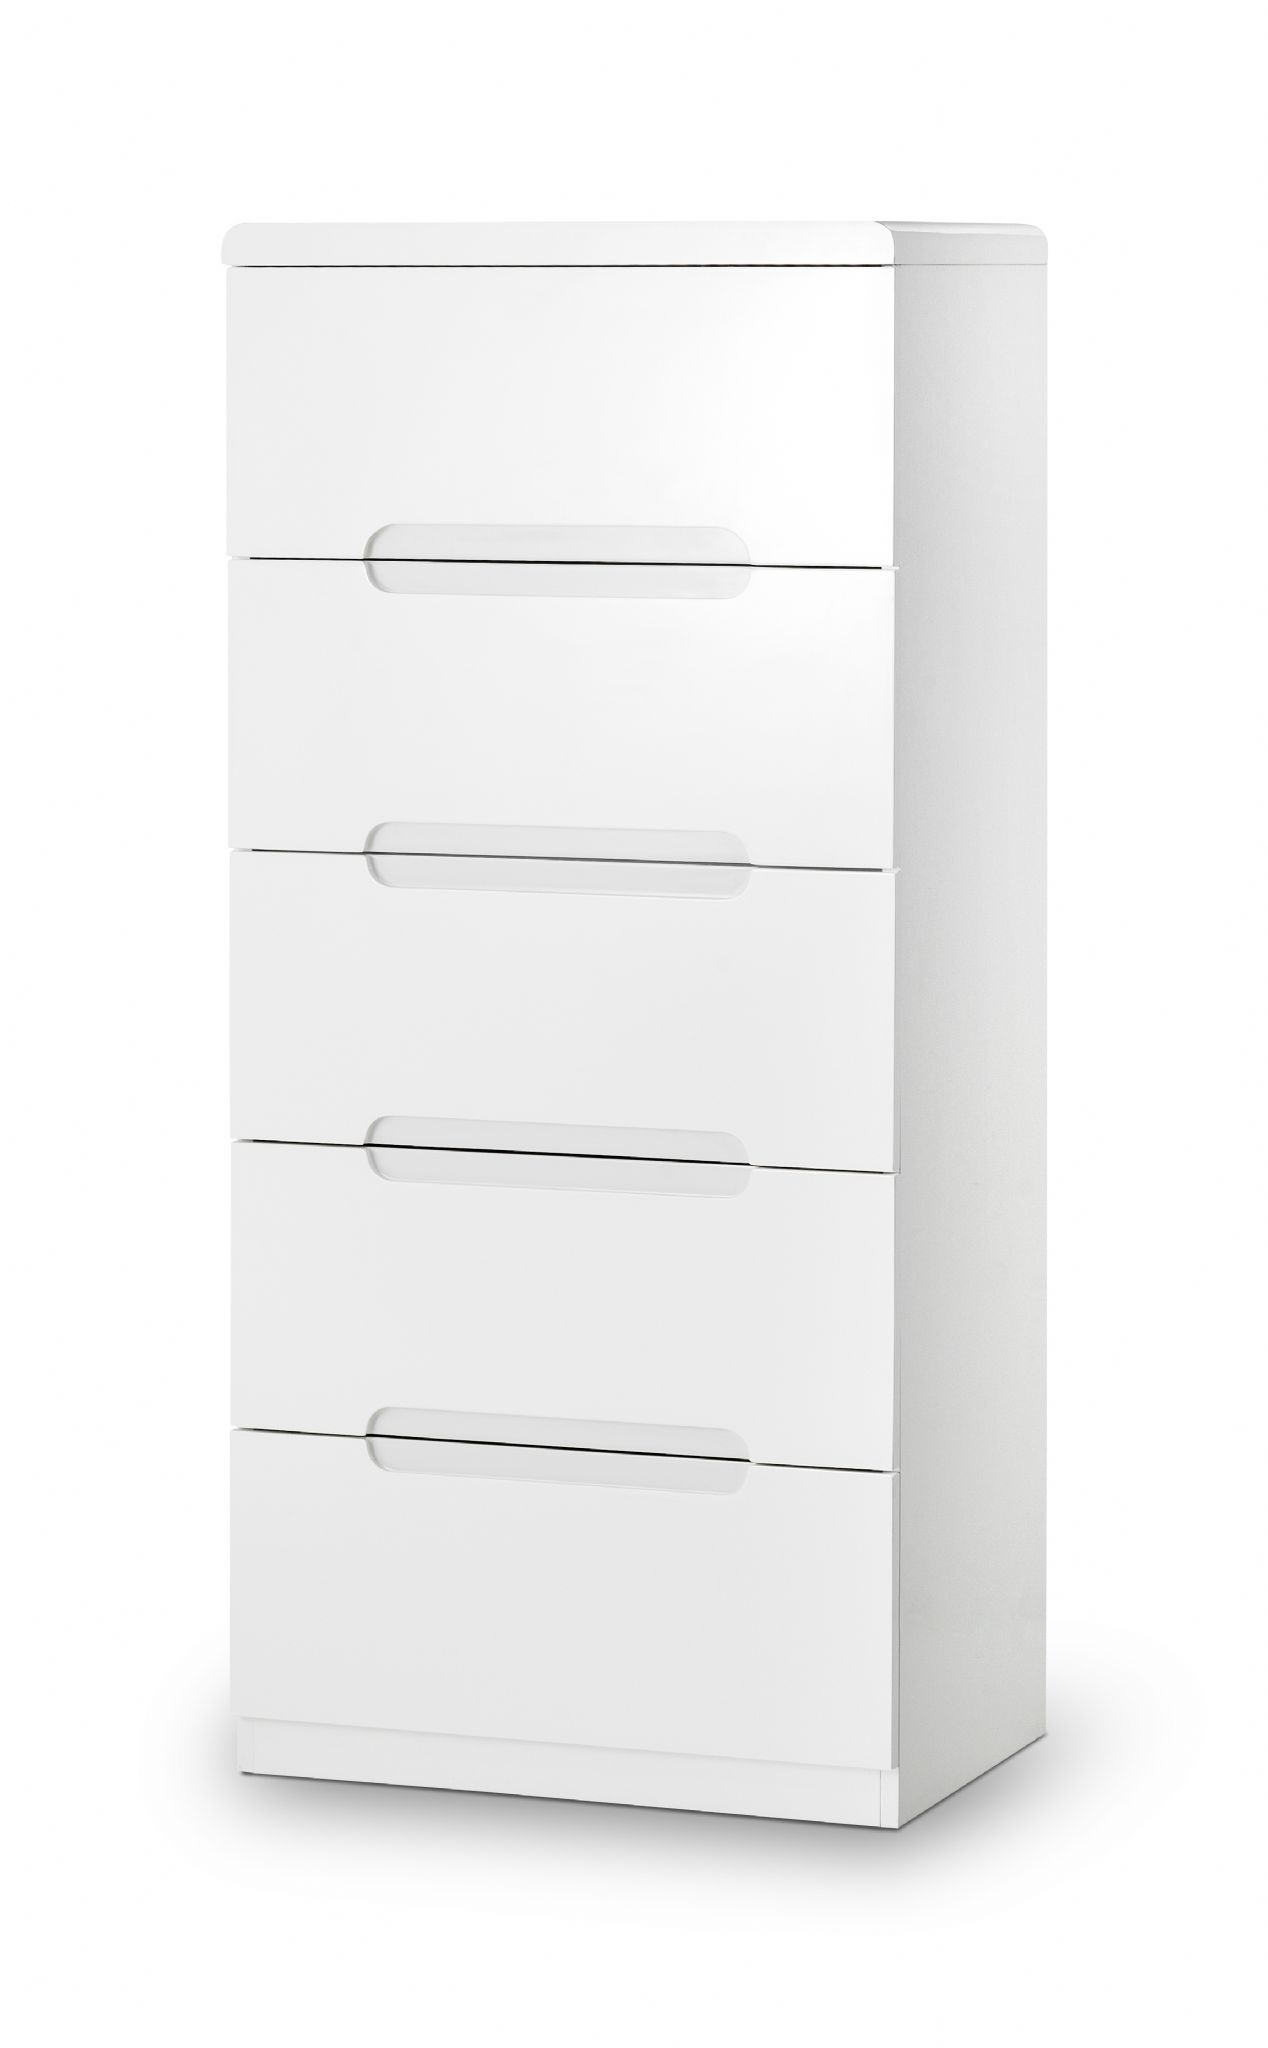 White Gloss Drawers Alzira White High Gloss Lacquer 5 Drawer Narrow Chest Jb311